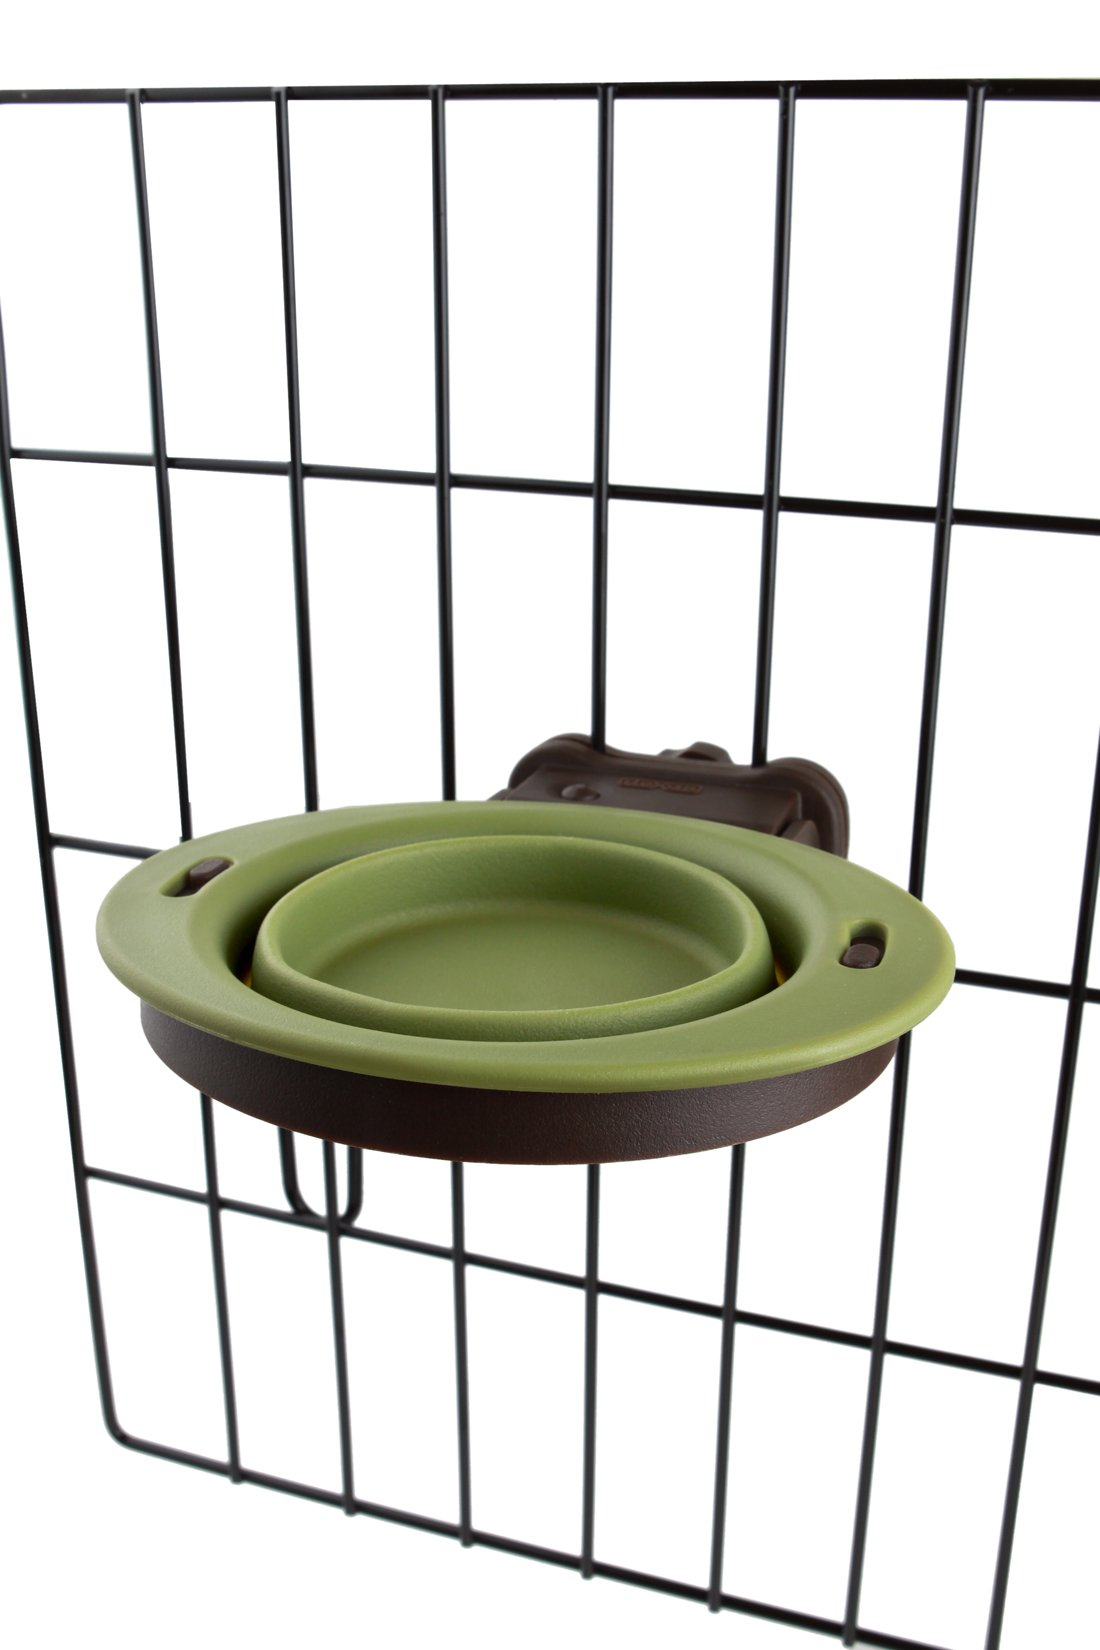 Dexas Popware for Pets Pivot Collapsible Kennel Cup, Small, Green